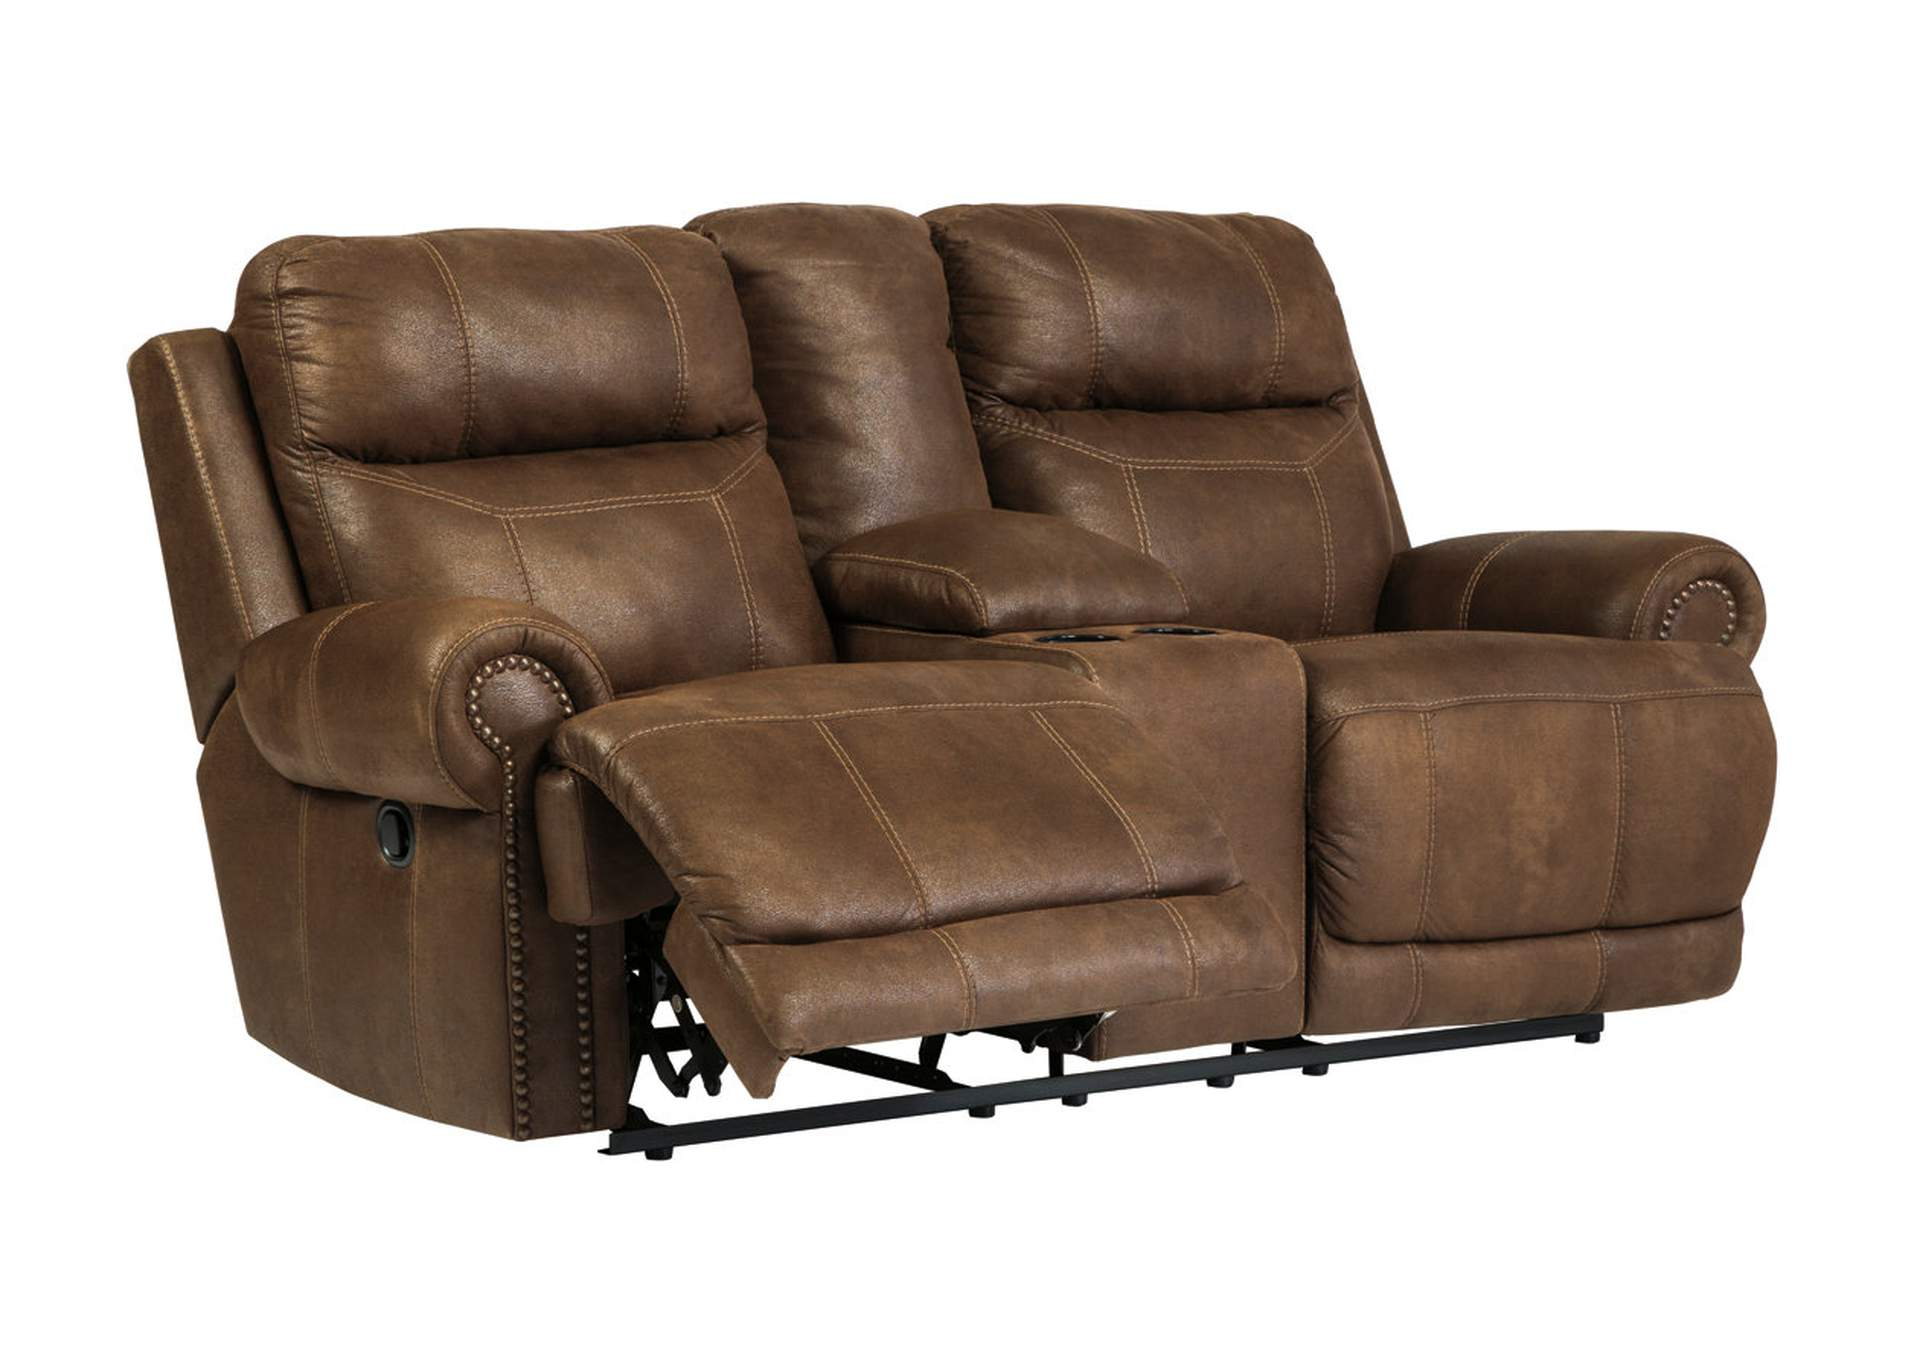 Oak Furniture Liquidators Austere Brown Double Reclining